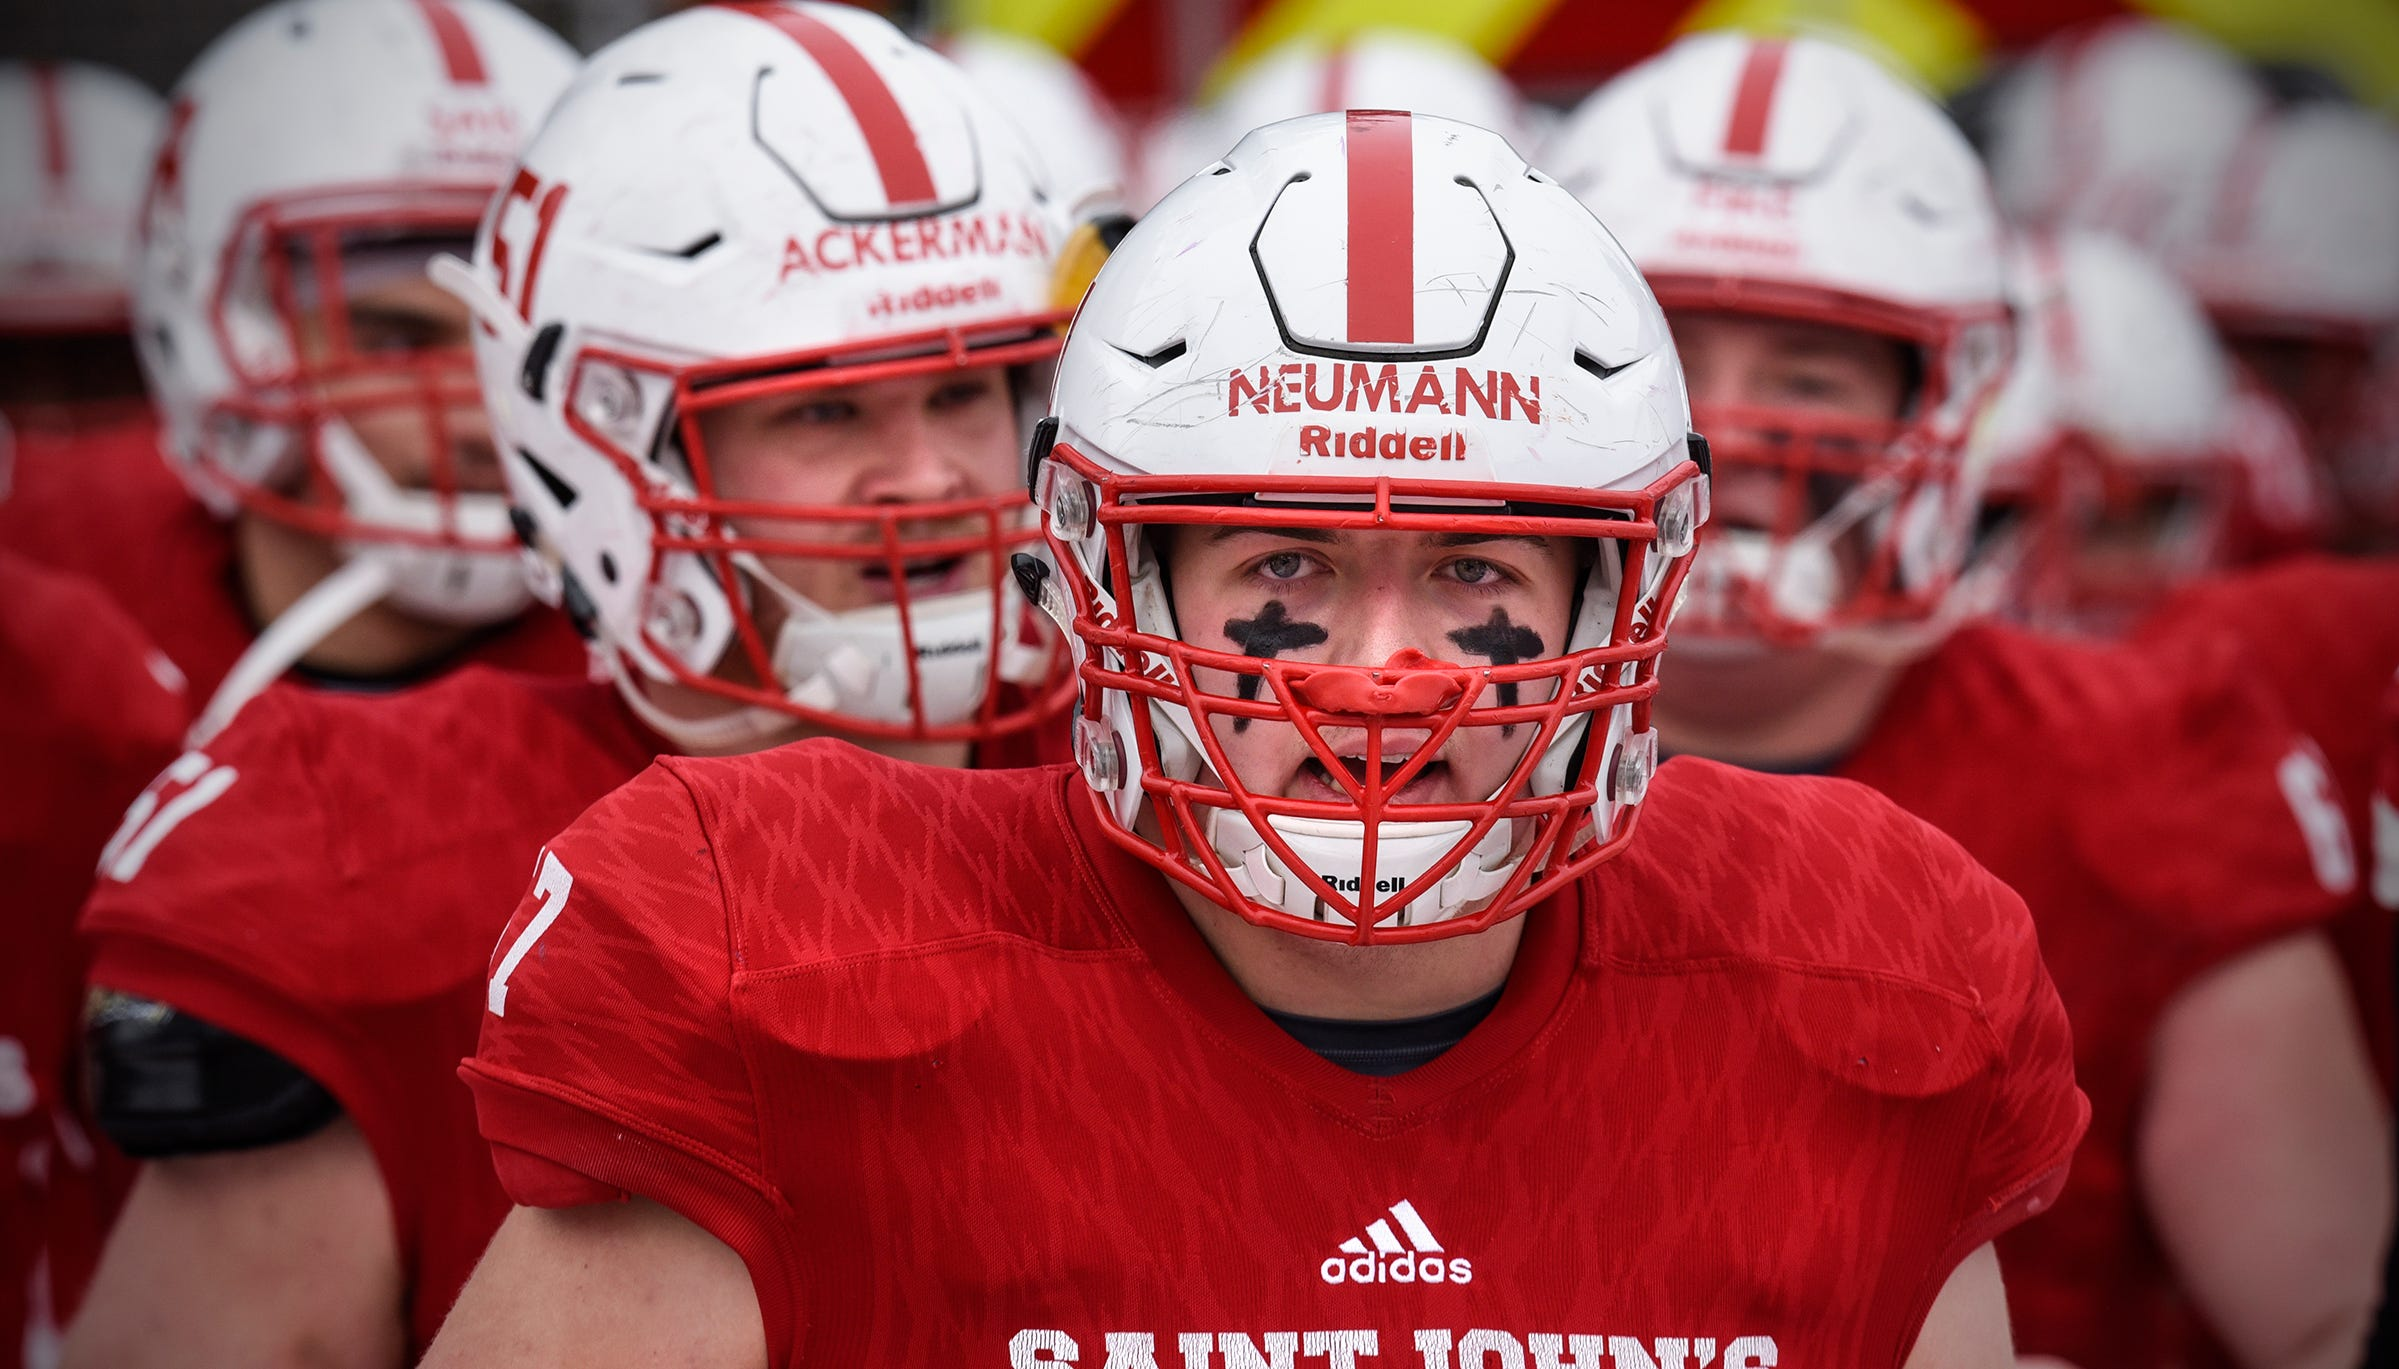 St. John's players take the field for the first half of the Saturday, Nov. 10, game against Thomas More University at Clemens Stadium in Collegeville.